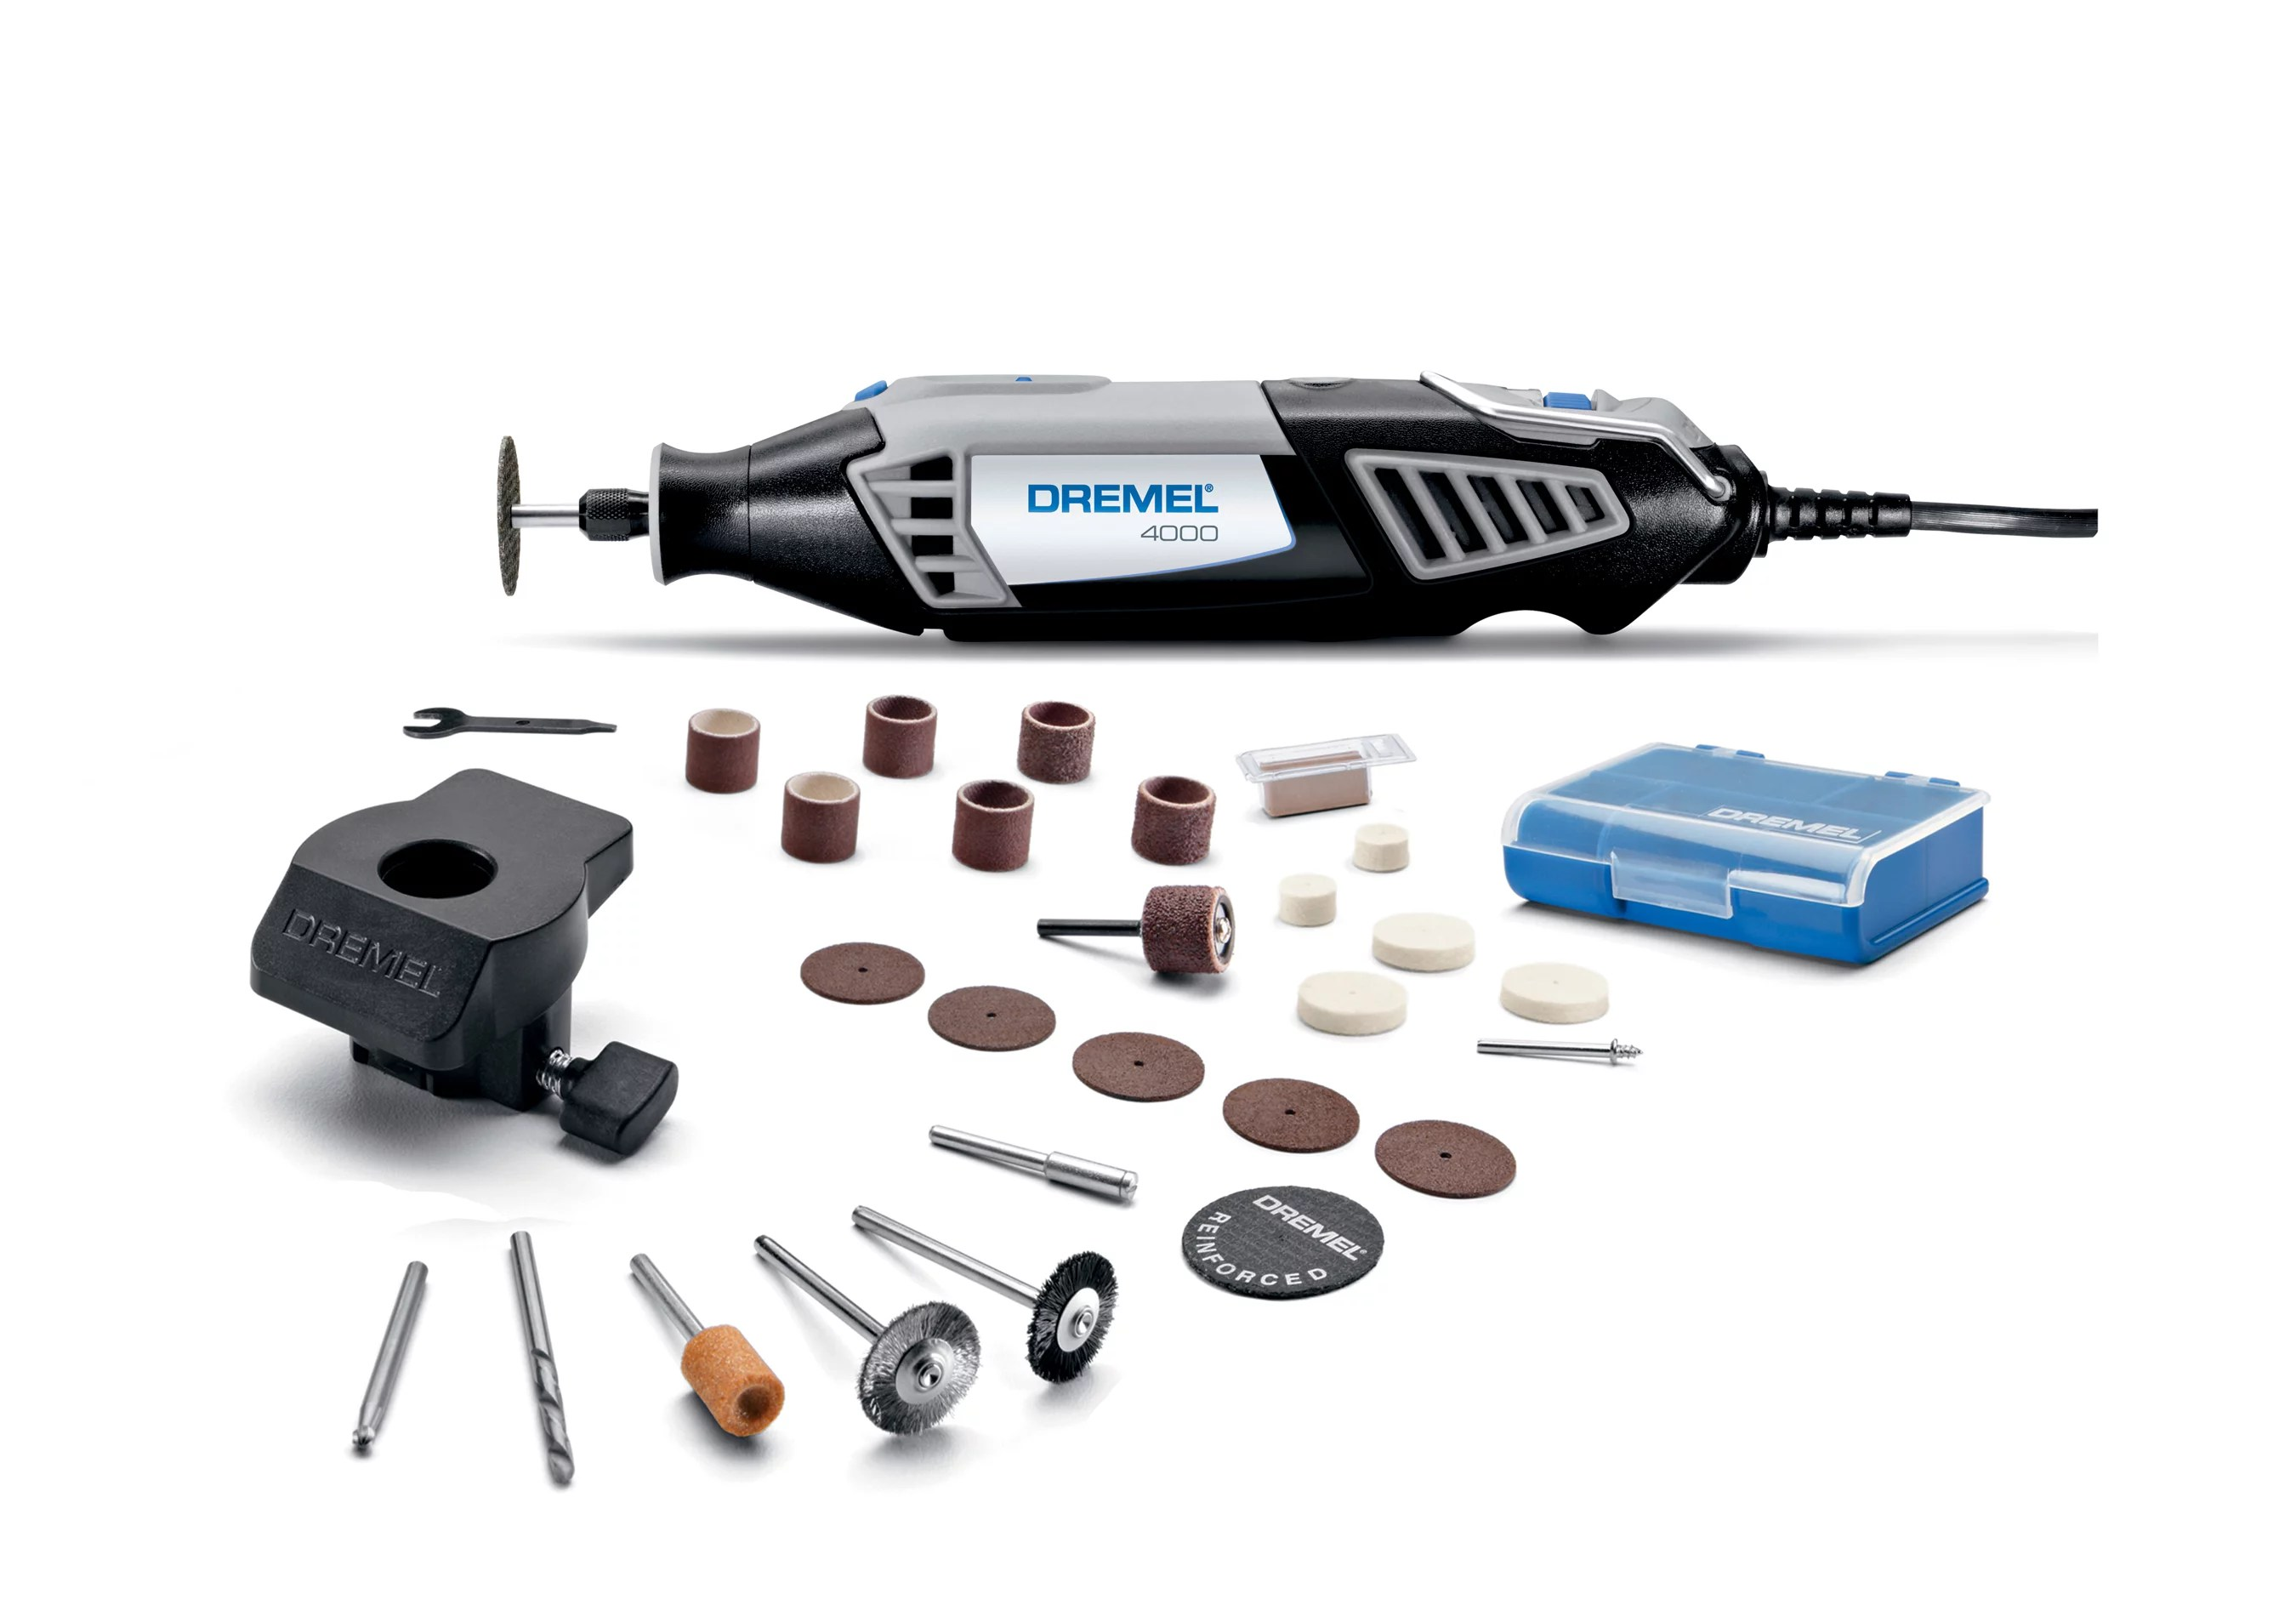 Dremel Hulpstukken Dremel 4000 1 26 1 6 Amp Corded Variable Speed Rotary Tool